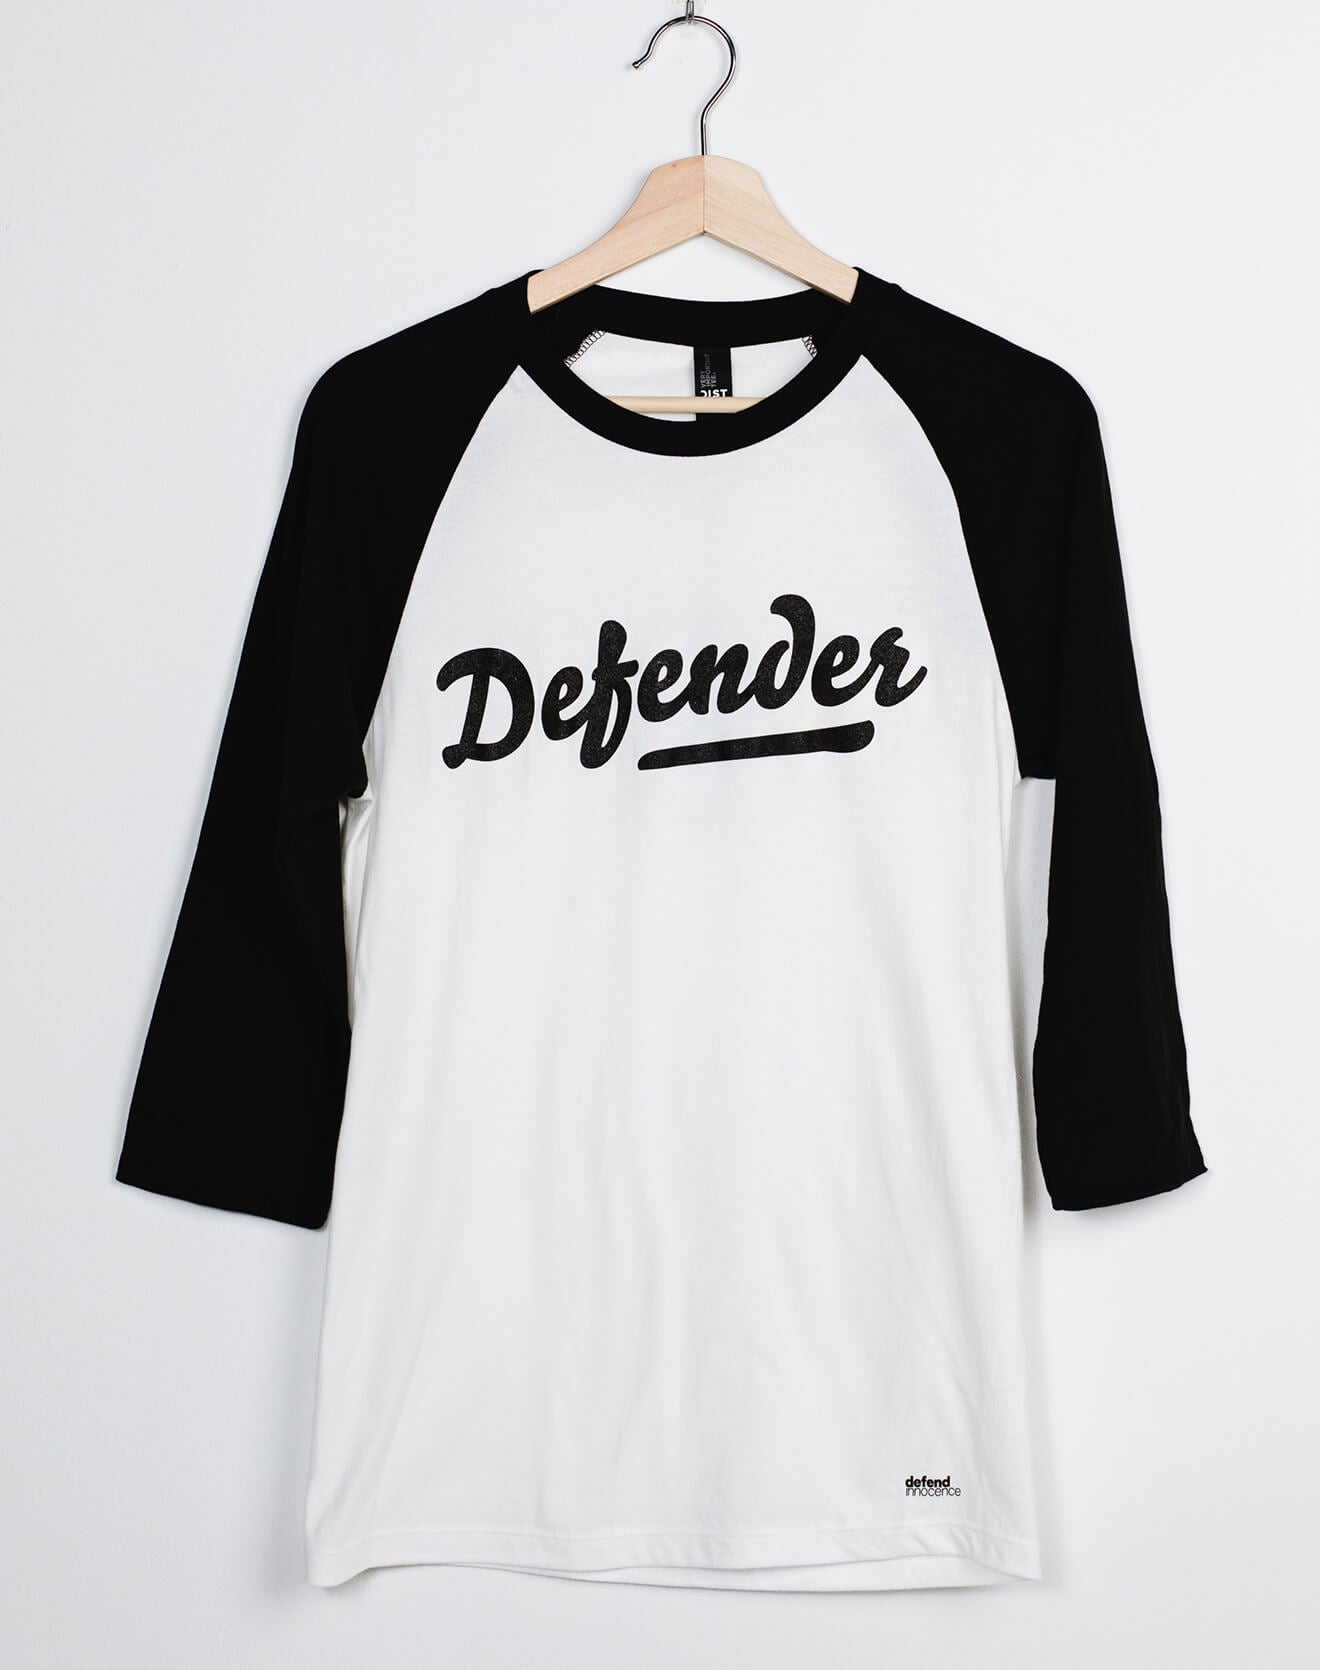 Defender Black and White Baseball Raglan Unisex Tee